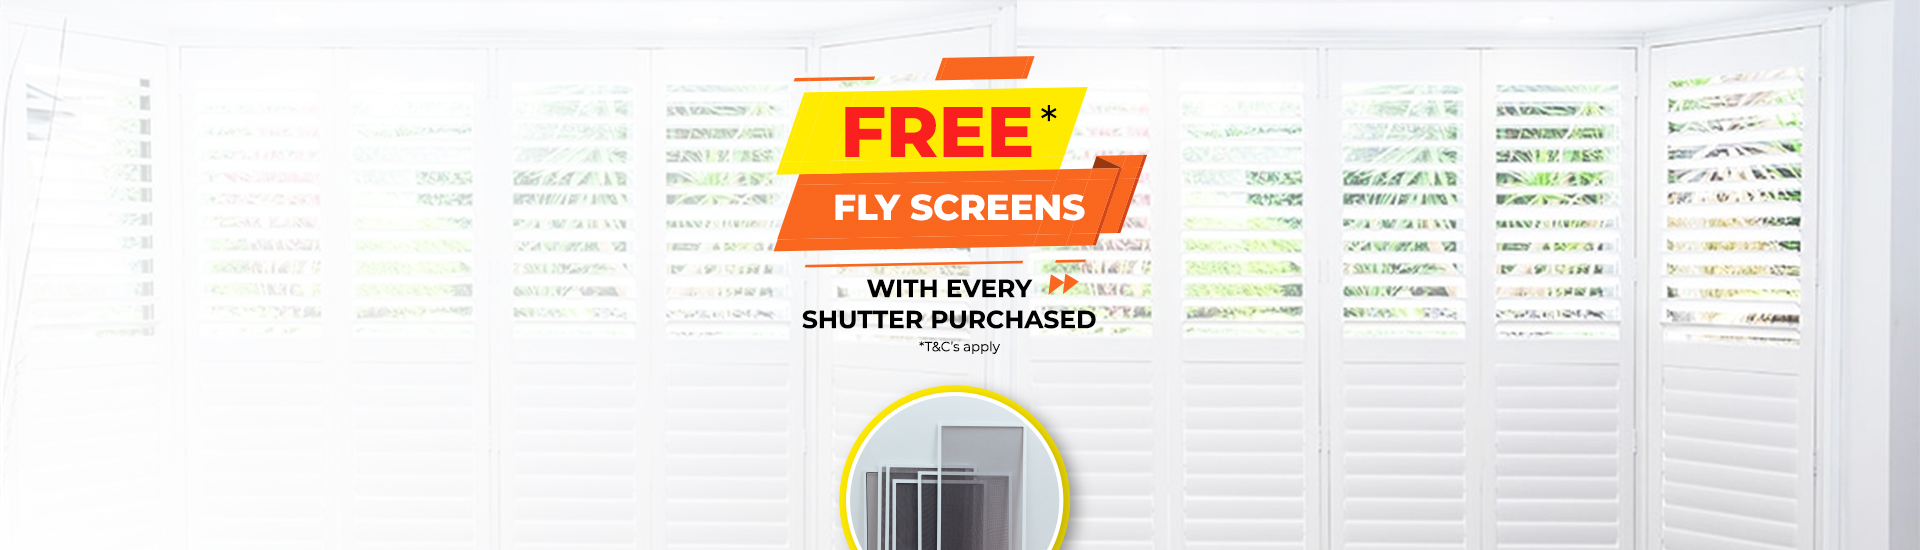 Free Fly Screens